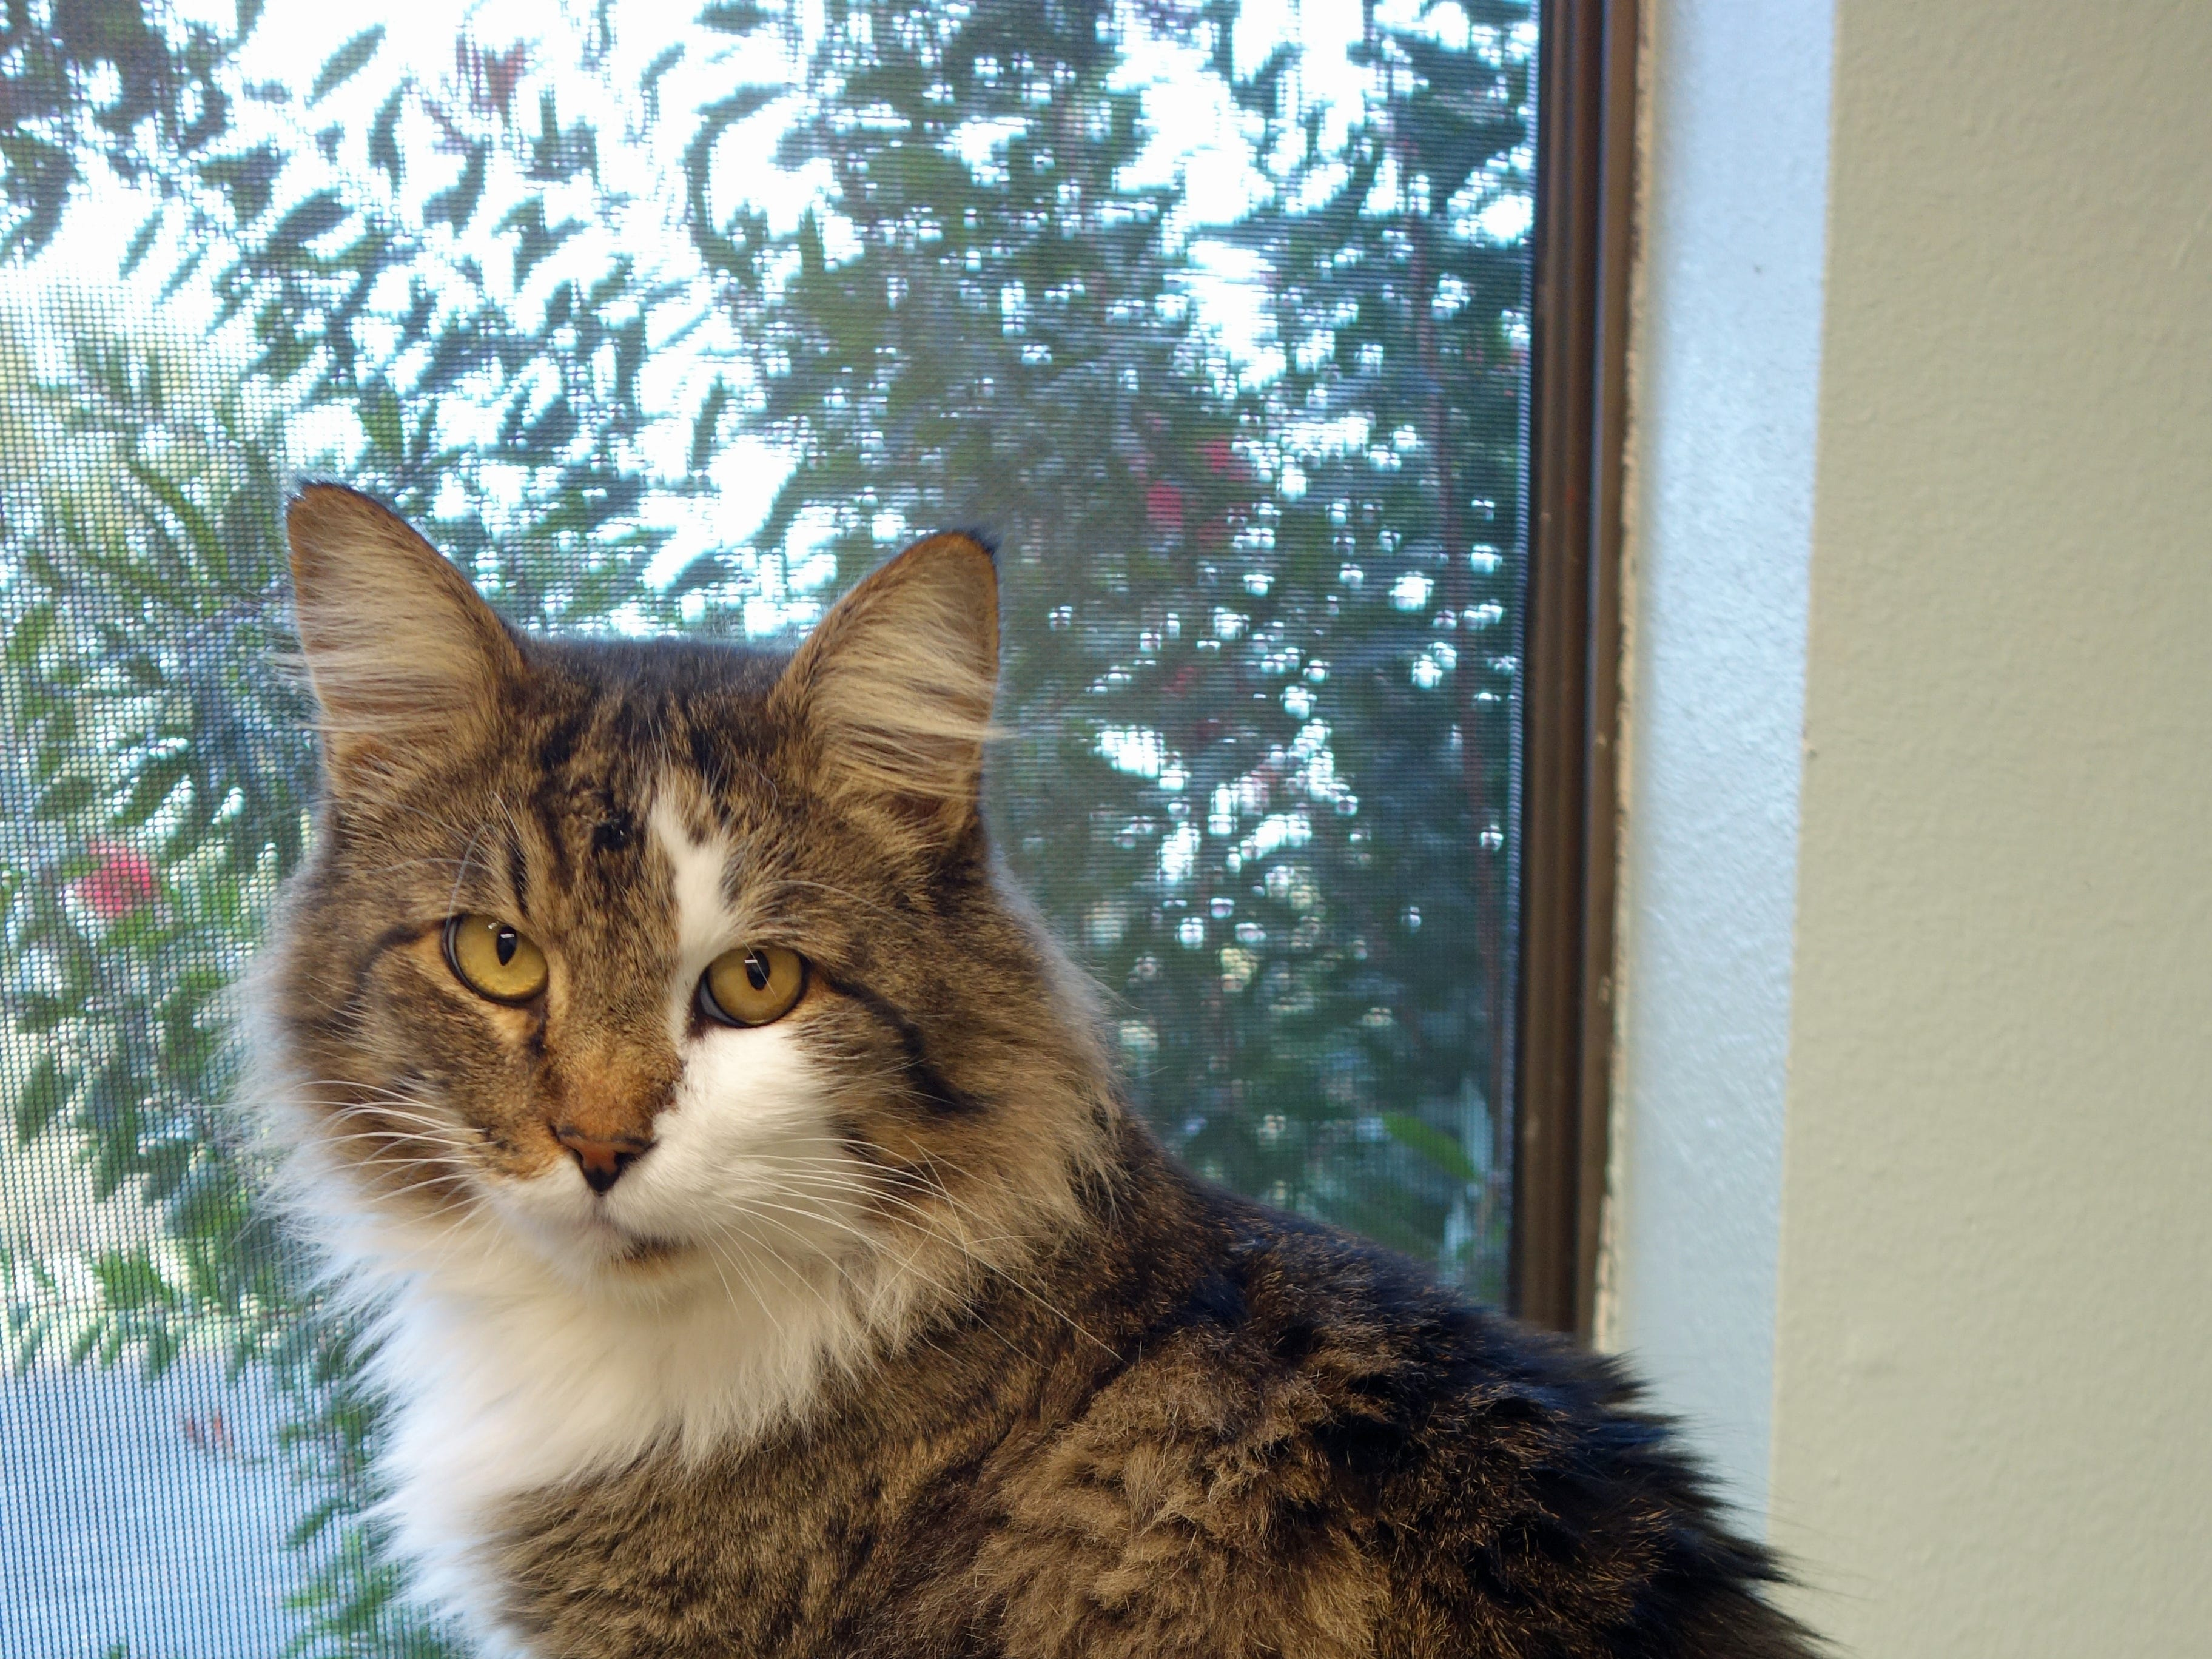 Sir Francis Drake is a silky, soft, long-haired male cat with white and tabby markings. He's a lap cat who loves attention. He's a mellow fellow who gets along well with other cats. Email Spay Neuter and Protect at Snap.spayneuterandprotect@gmail.com. Call 209-6966.